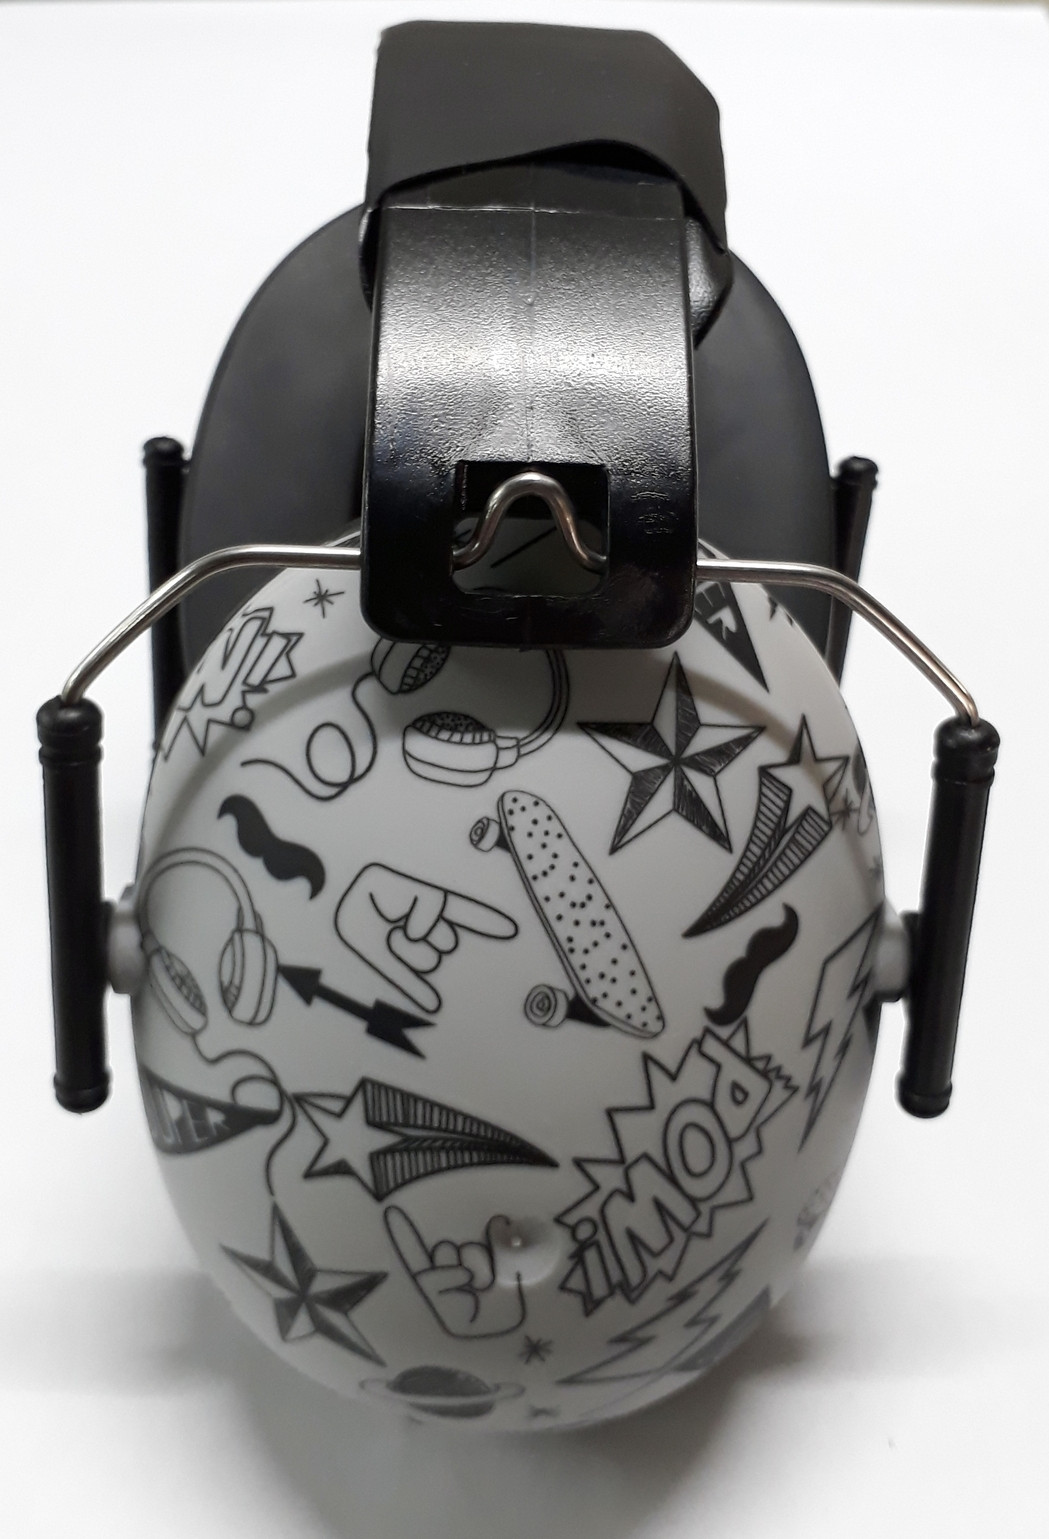 Casque anti-bruit enfant Graffiti Banz